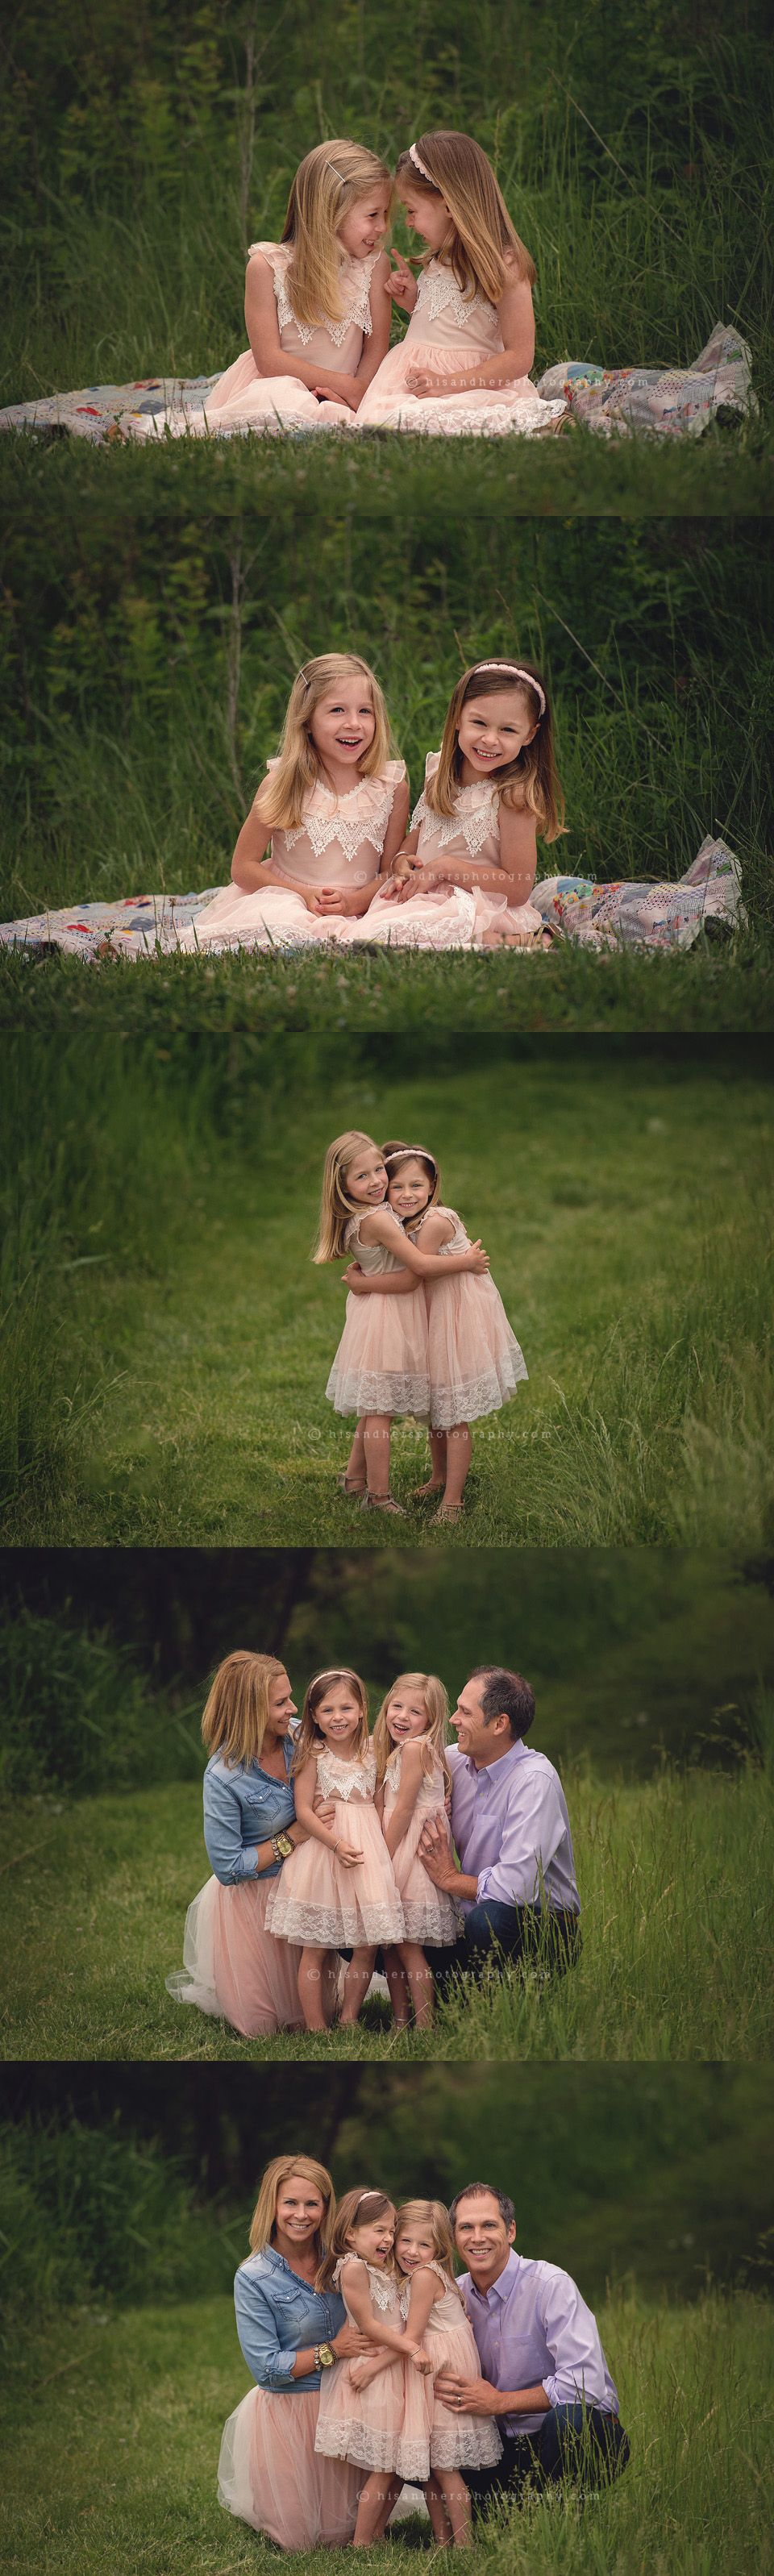 des moines iowa family portraits photographer family pictures iowa twins sisters sibling photography